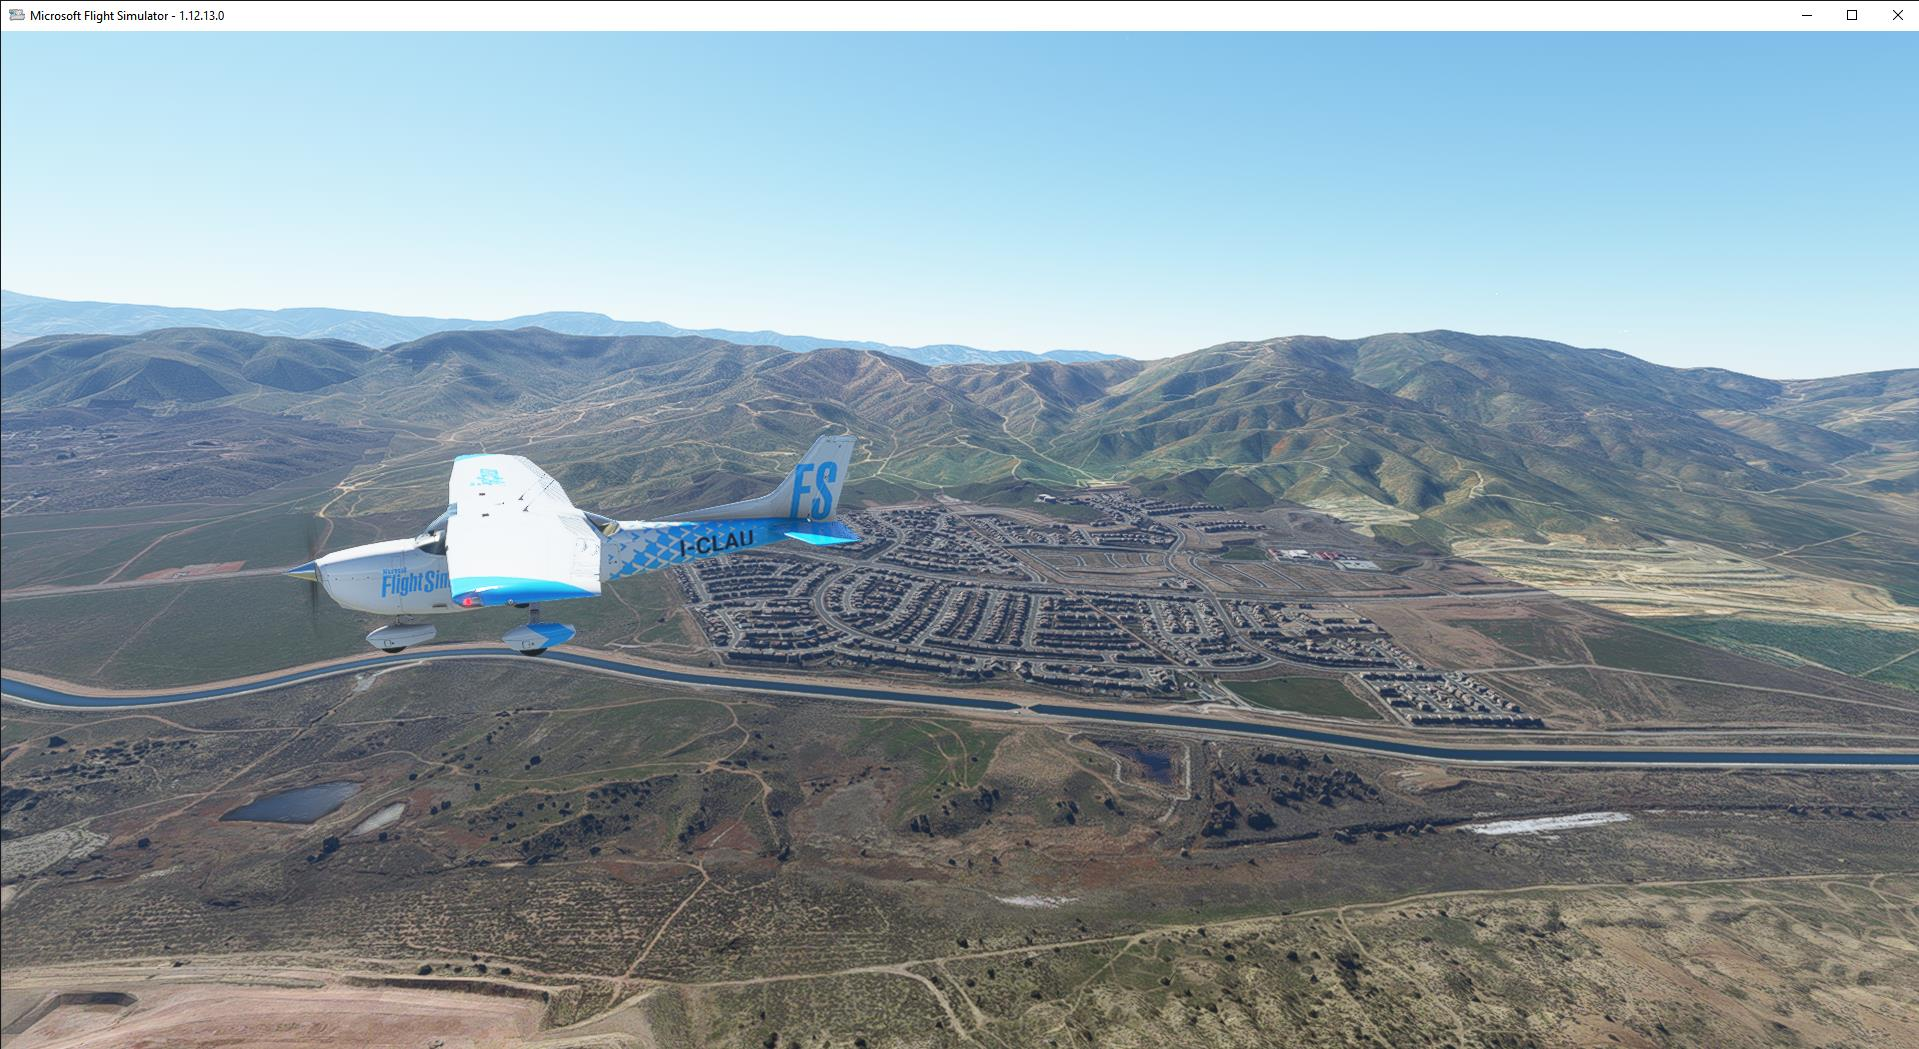 https://vivendobyte.blob.core.windows.net/57784/Microsoft Flight Simulator - 1.12.13.0 12_01_2021 21_36_07.jpg